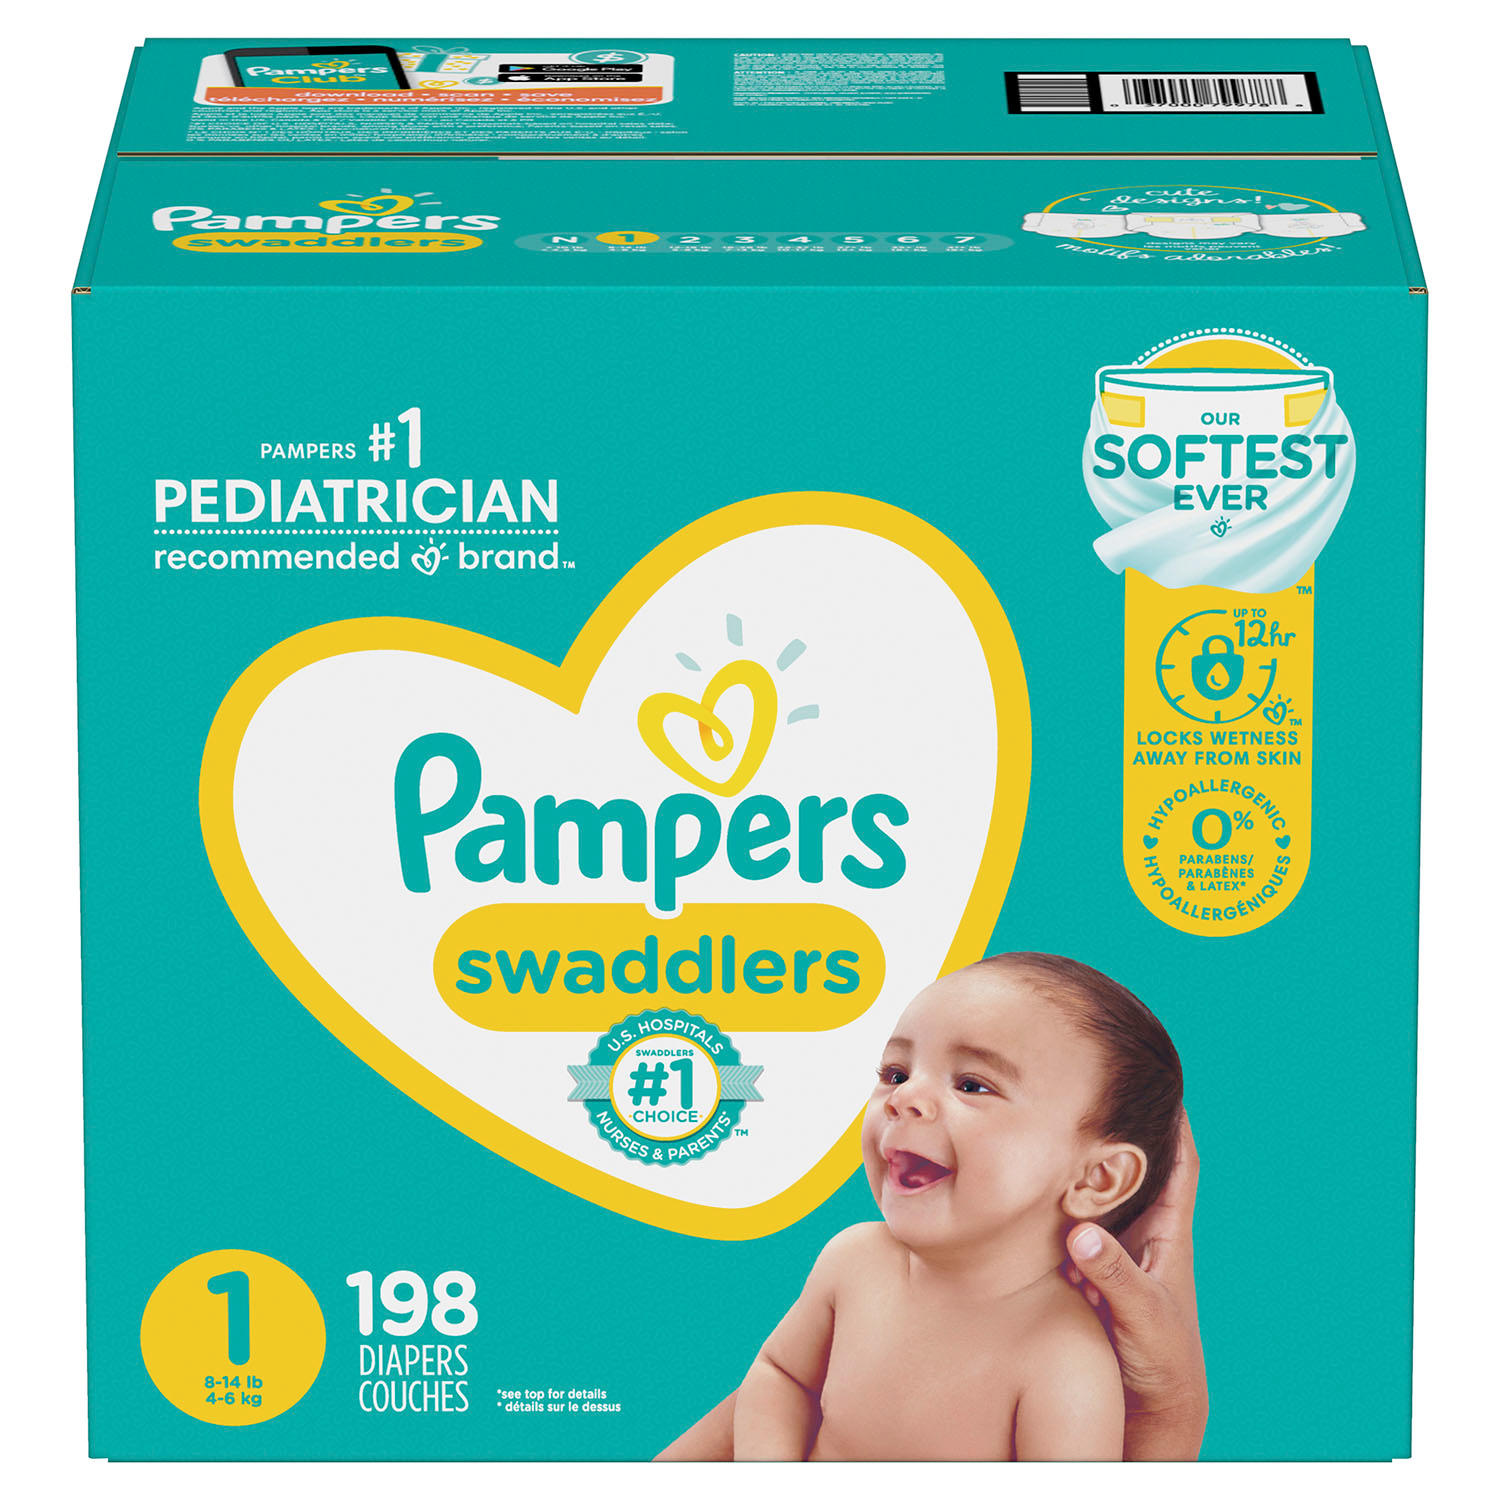 5ed5202b7a6c Pampers Swaddlers Diapers (Choose Your Size) - Sam s Club